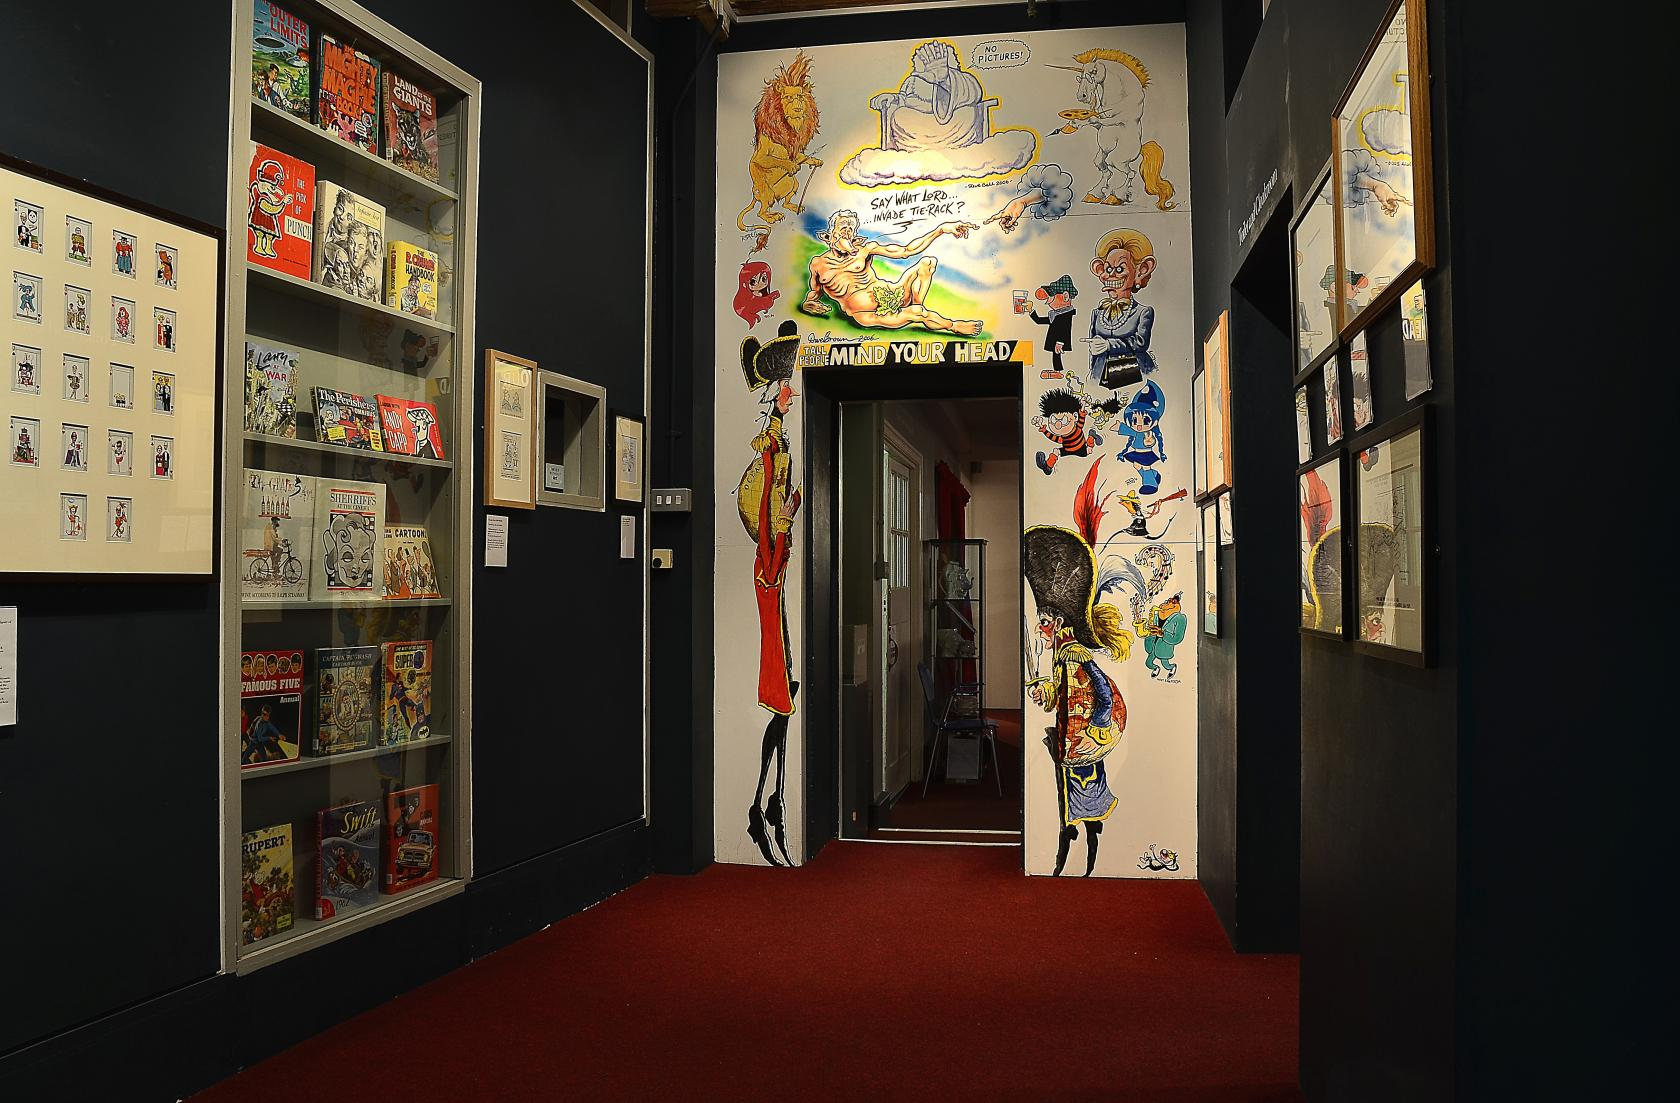 The museum exhibits original artwork from some of the biggest names in cartooning, as well as rare comic items from The Dandy, Eagle and 2000 AD.